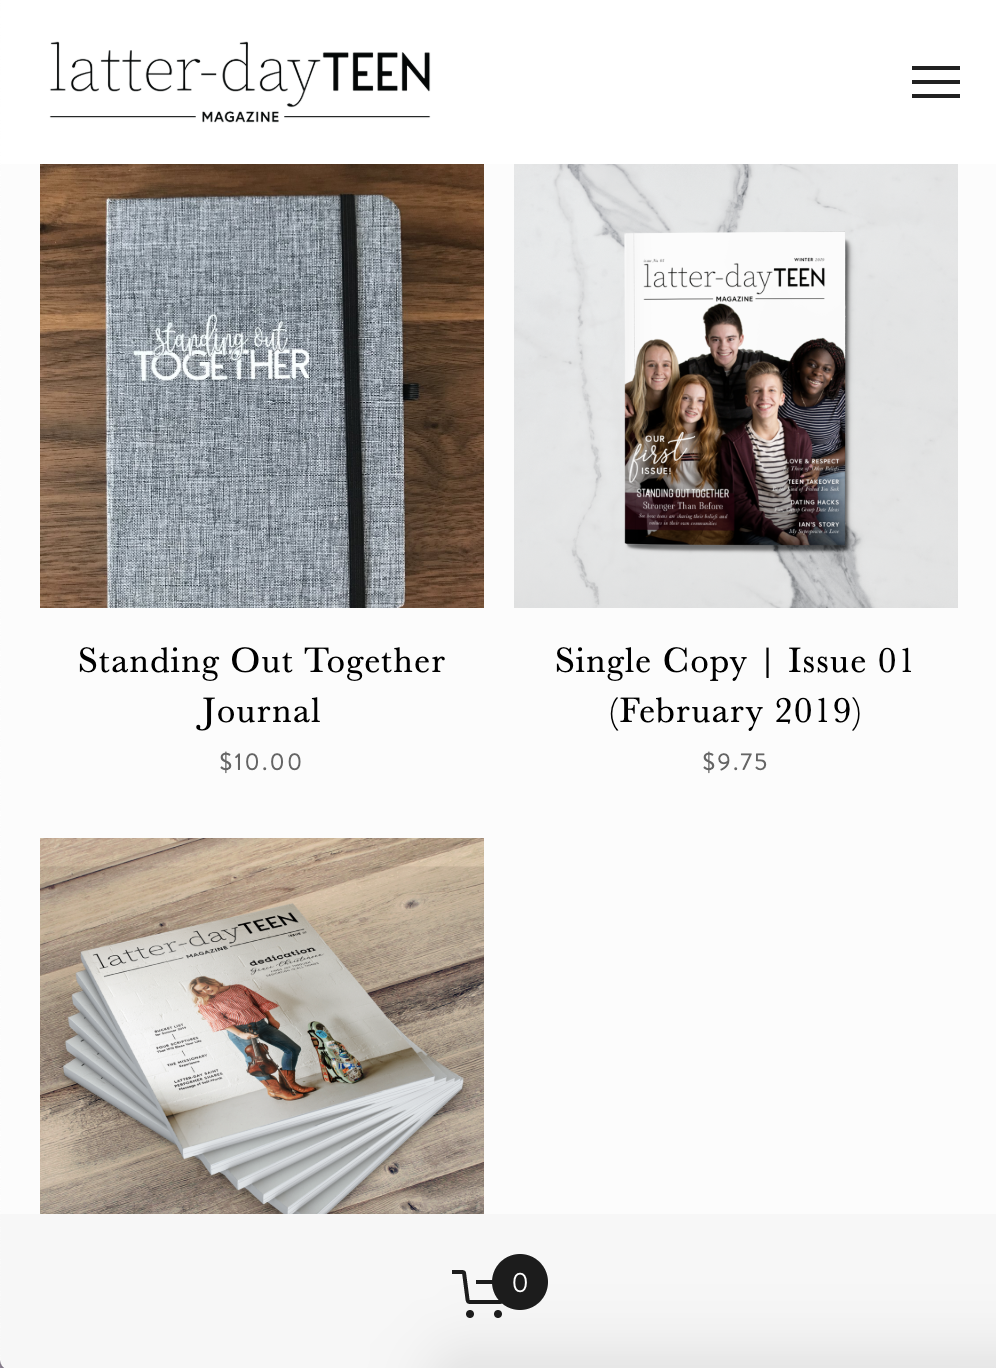 Mobile website design on Squarespace for Latter-day Teen Magazine by Rachel Cottrell of The Bloom Design Company | #graphicdesign #moderndesign #classic #religiousmagazine #christian #lds #squarespace #websitedesign #branddesigner #logodesigner #squarespacedesign